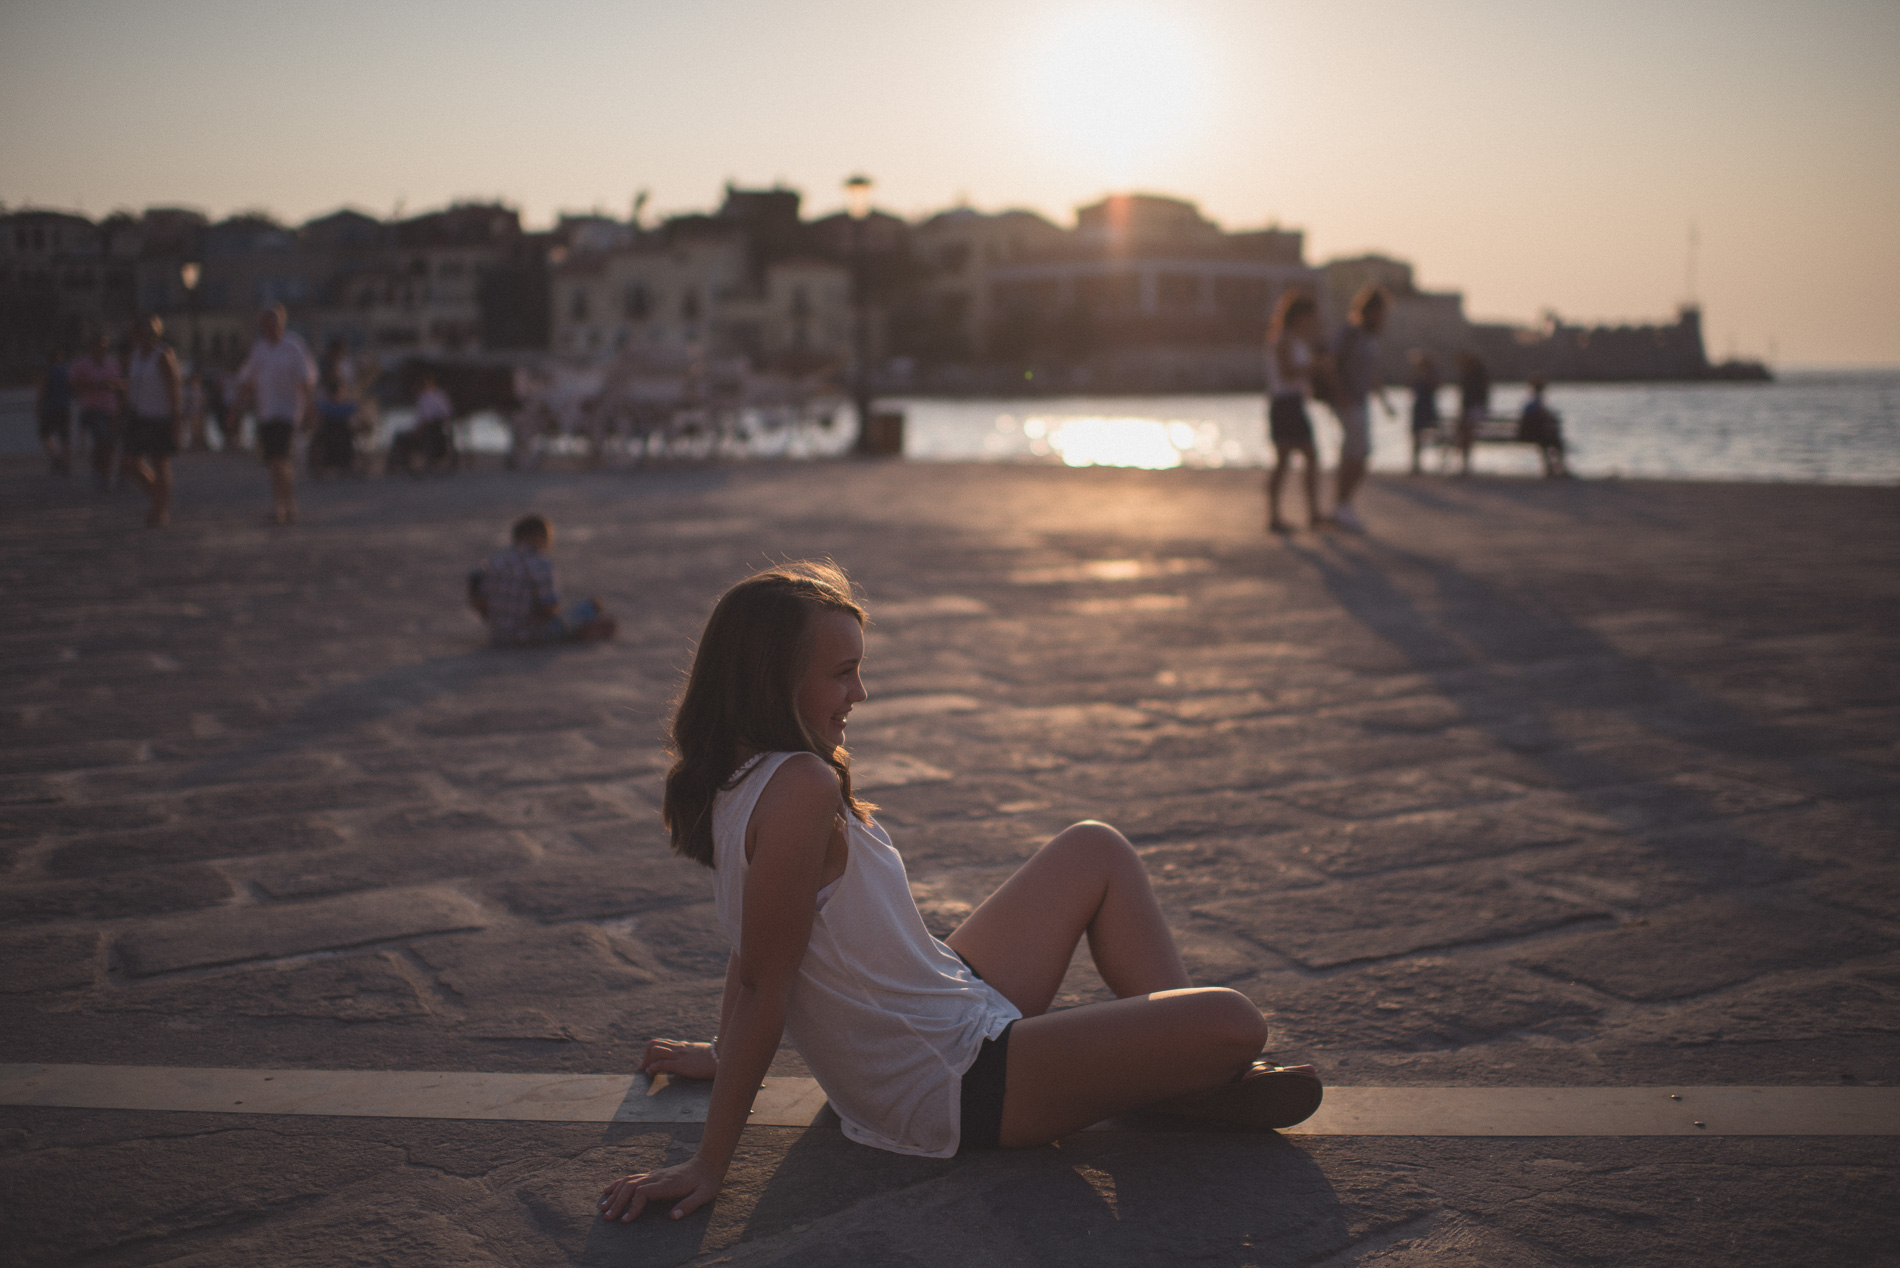 Sunset senior portrait in Chania Crete